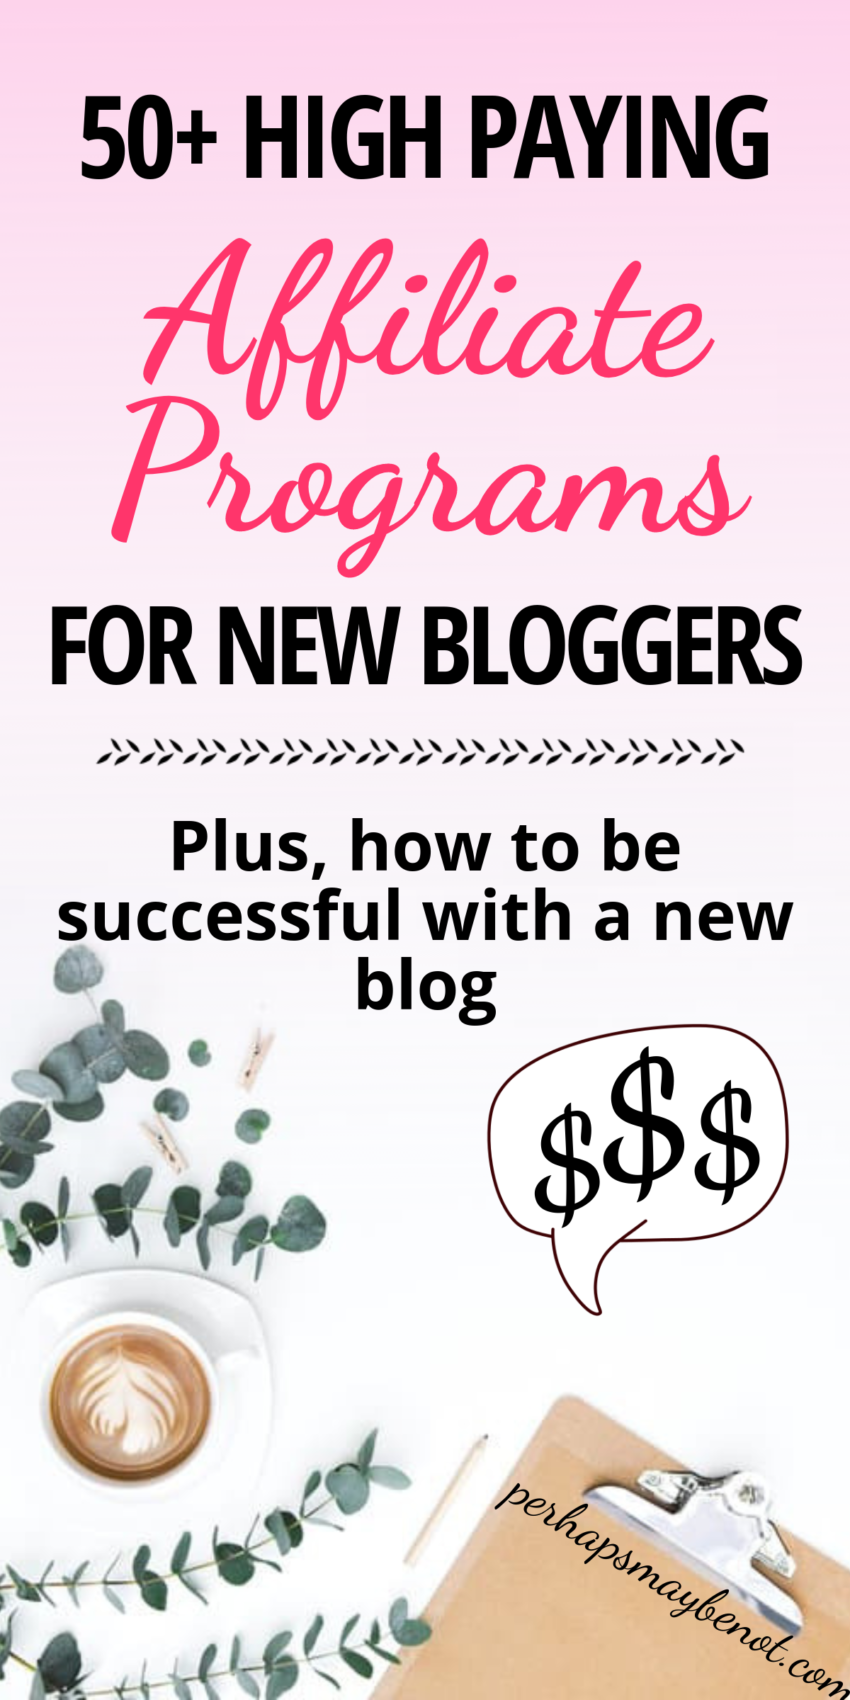 High Paying Affiliate Programs for New Bloggers